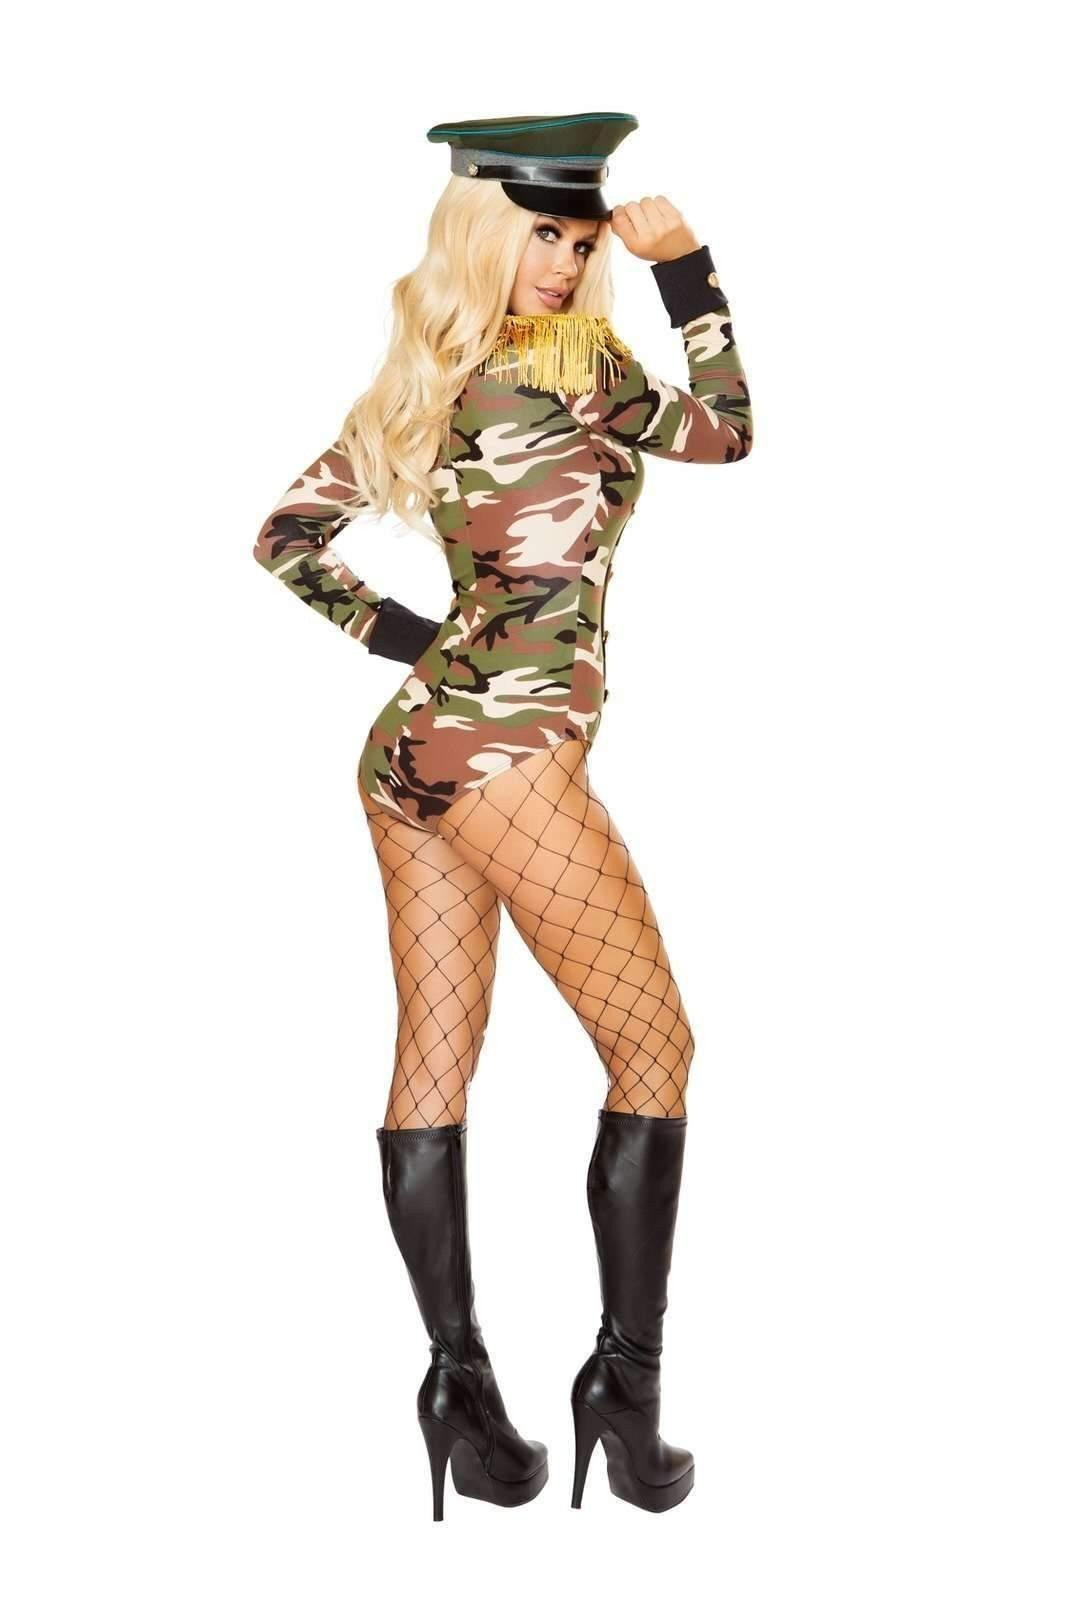 Roma Costume 4817 - 1Pc Army Girl-Costumes-Roma-Unspoken Fashion